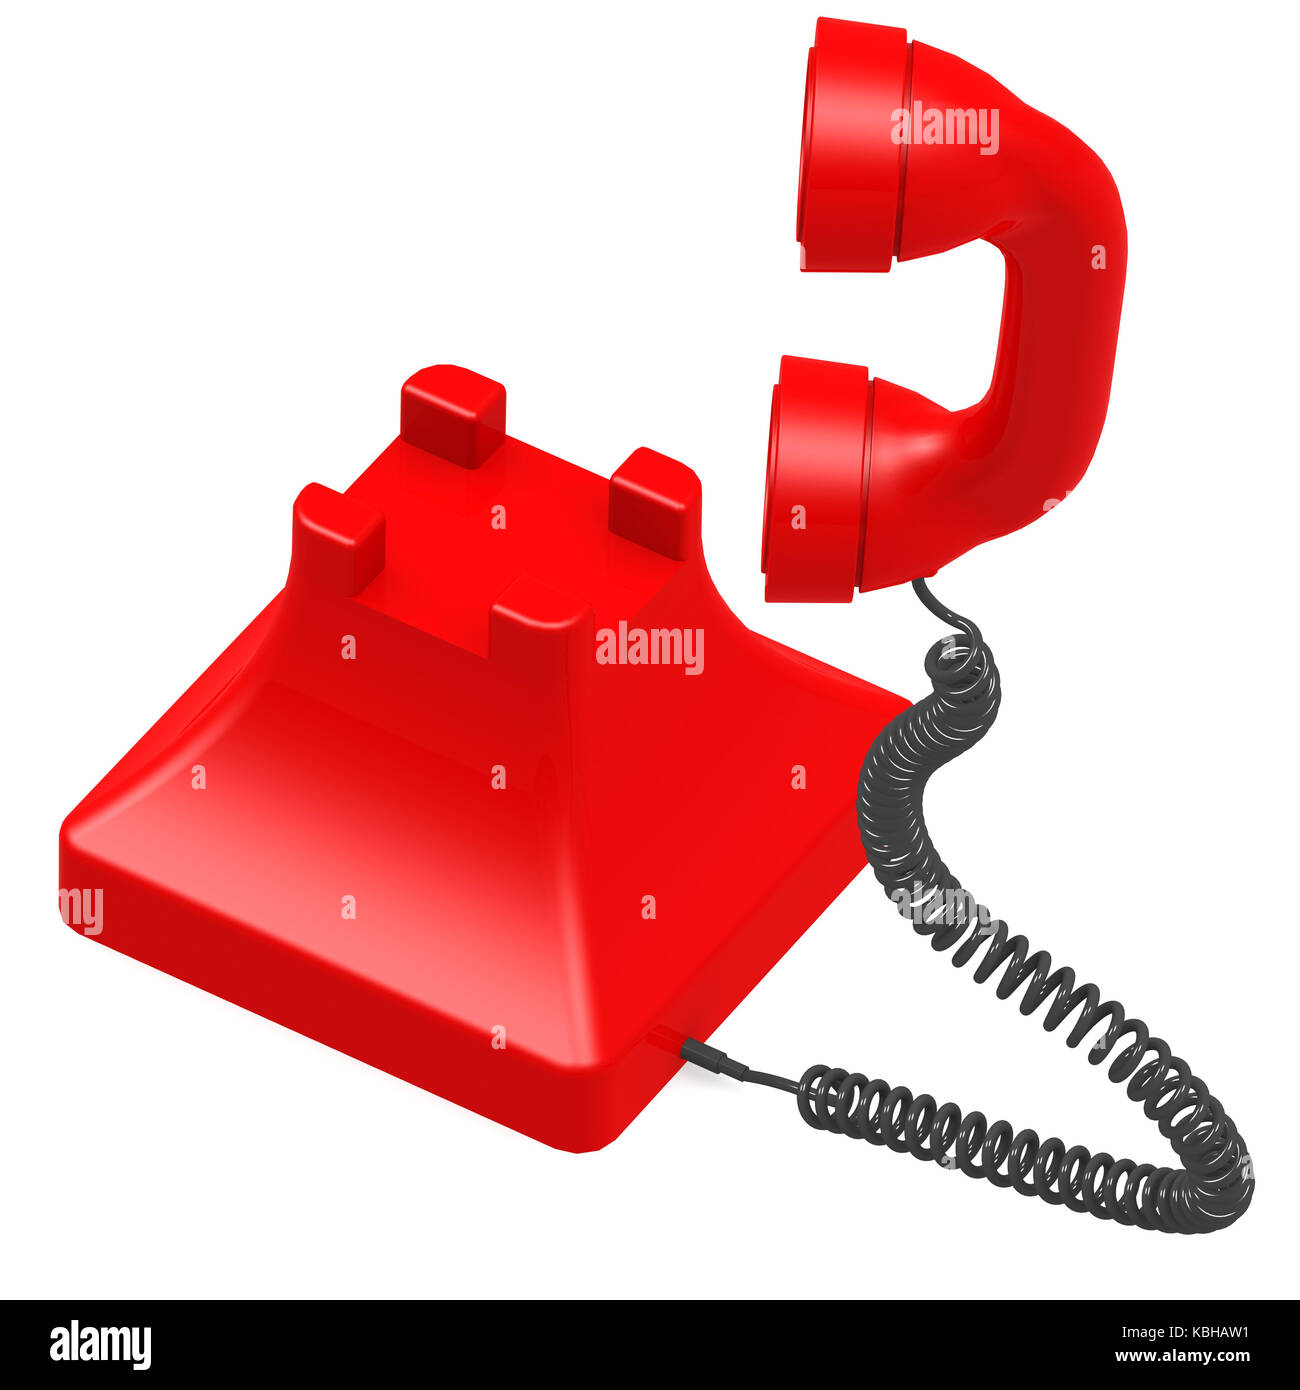 Red dial phone image with hi-res rendered artwork that could be used for any graphic design. Stock Photo